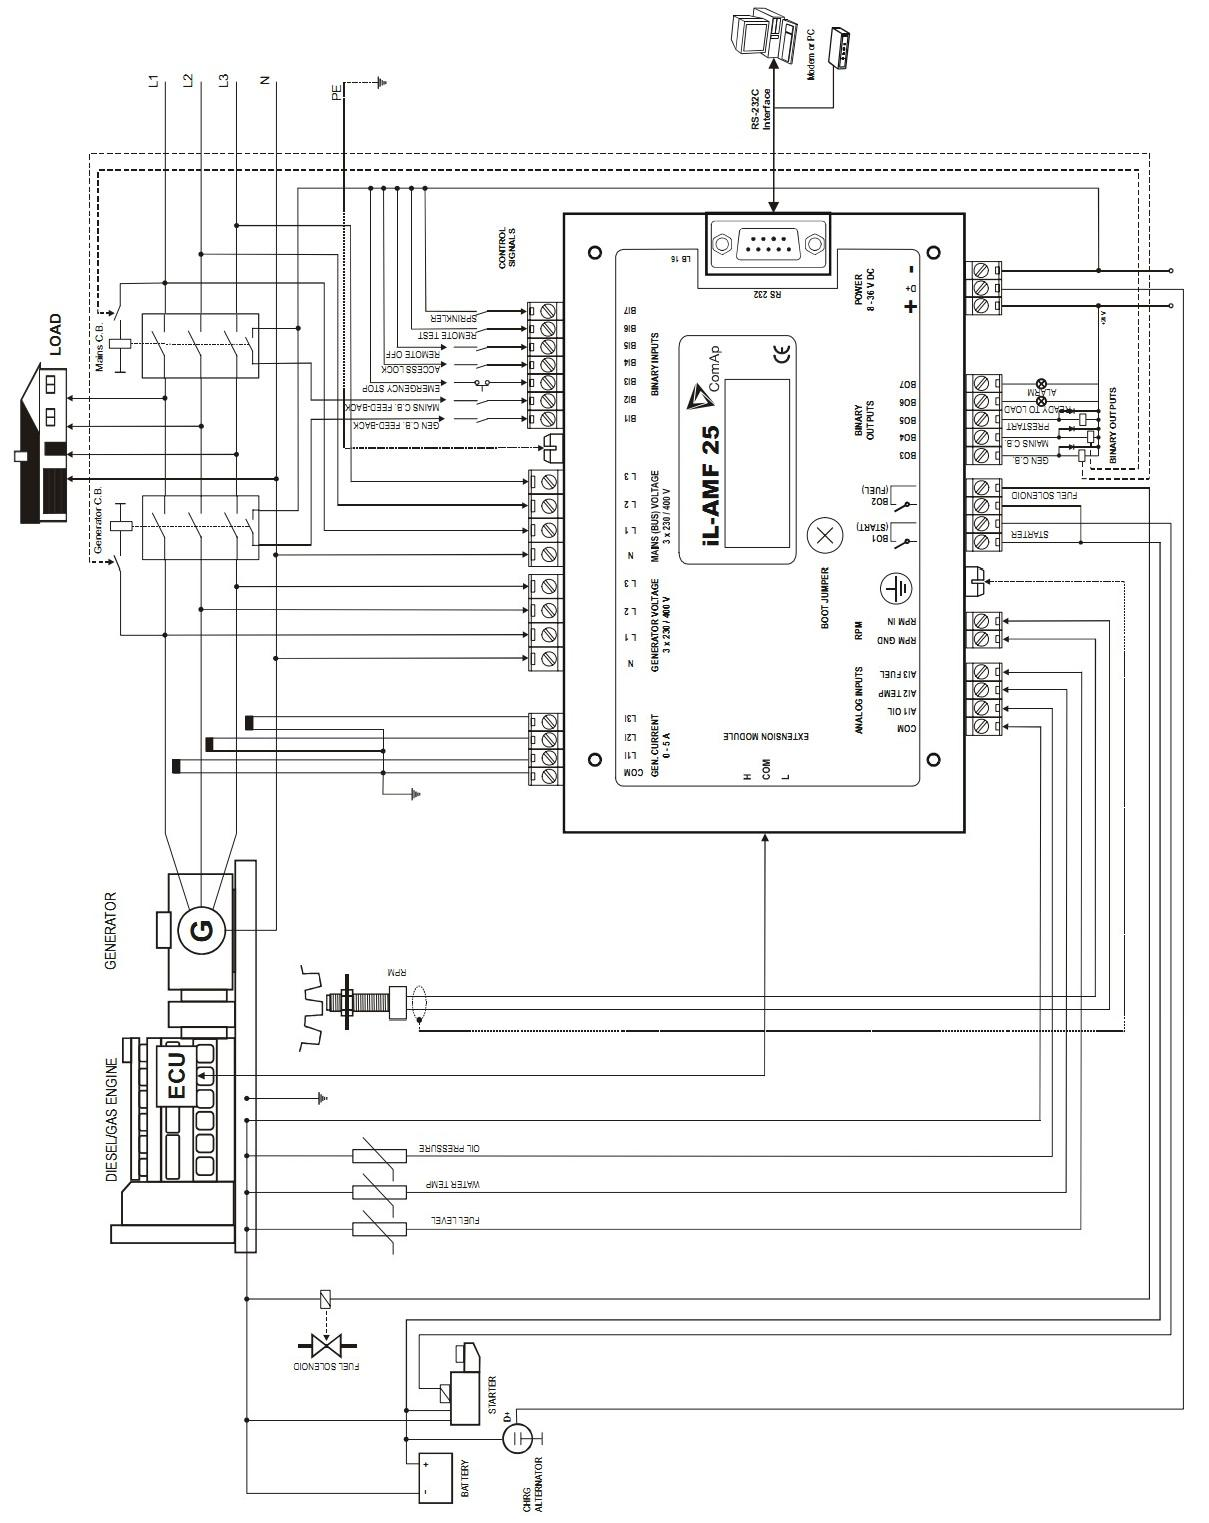 201210228323863 sx440 avr wiring diagram stamford mx321 manual \u2022 wiring diagrams  at reclaimingppi.co